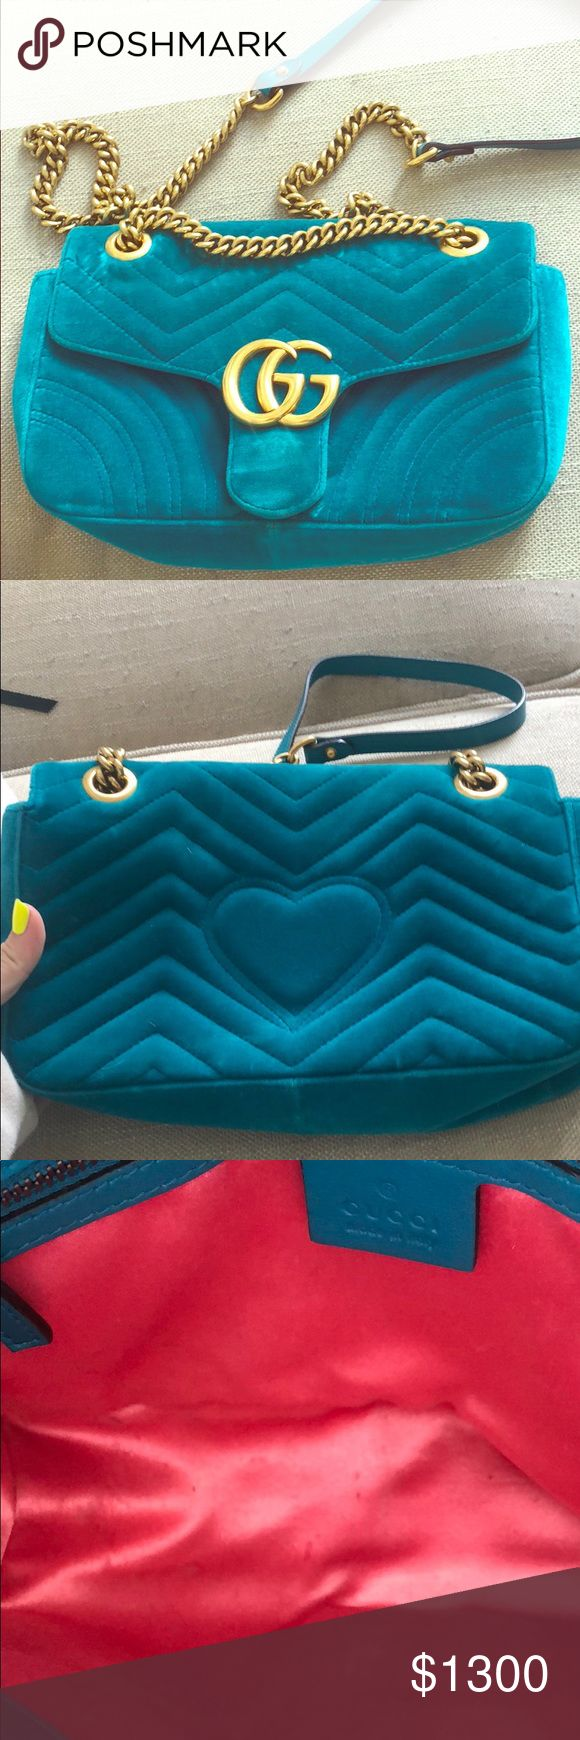 Gucci GG Marmont velvet shoulder bag Bought This in the summer in Australia before the price went up. If you check online which it's sold out you will see it is over $1700. The bag is slightly used in the inside because my snack opened inside my bag .. oops 🙊 other than that I've used it probably 3 times. The color is turquoise but Gucci calls it petrol blue velvet. Gucci Bags Crossbody Bags